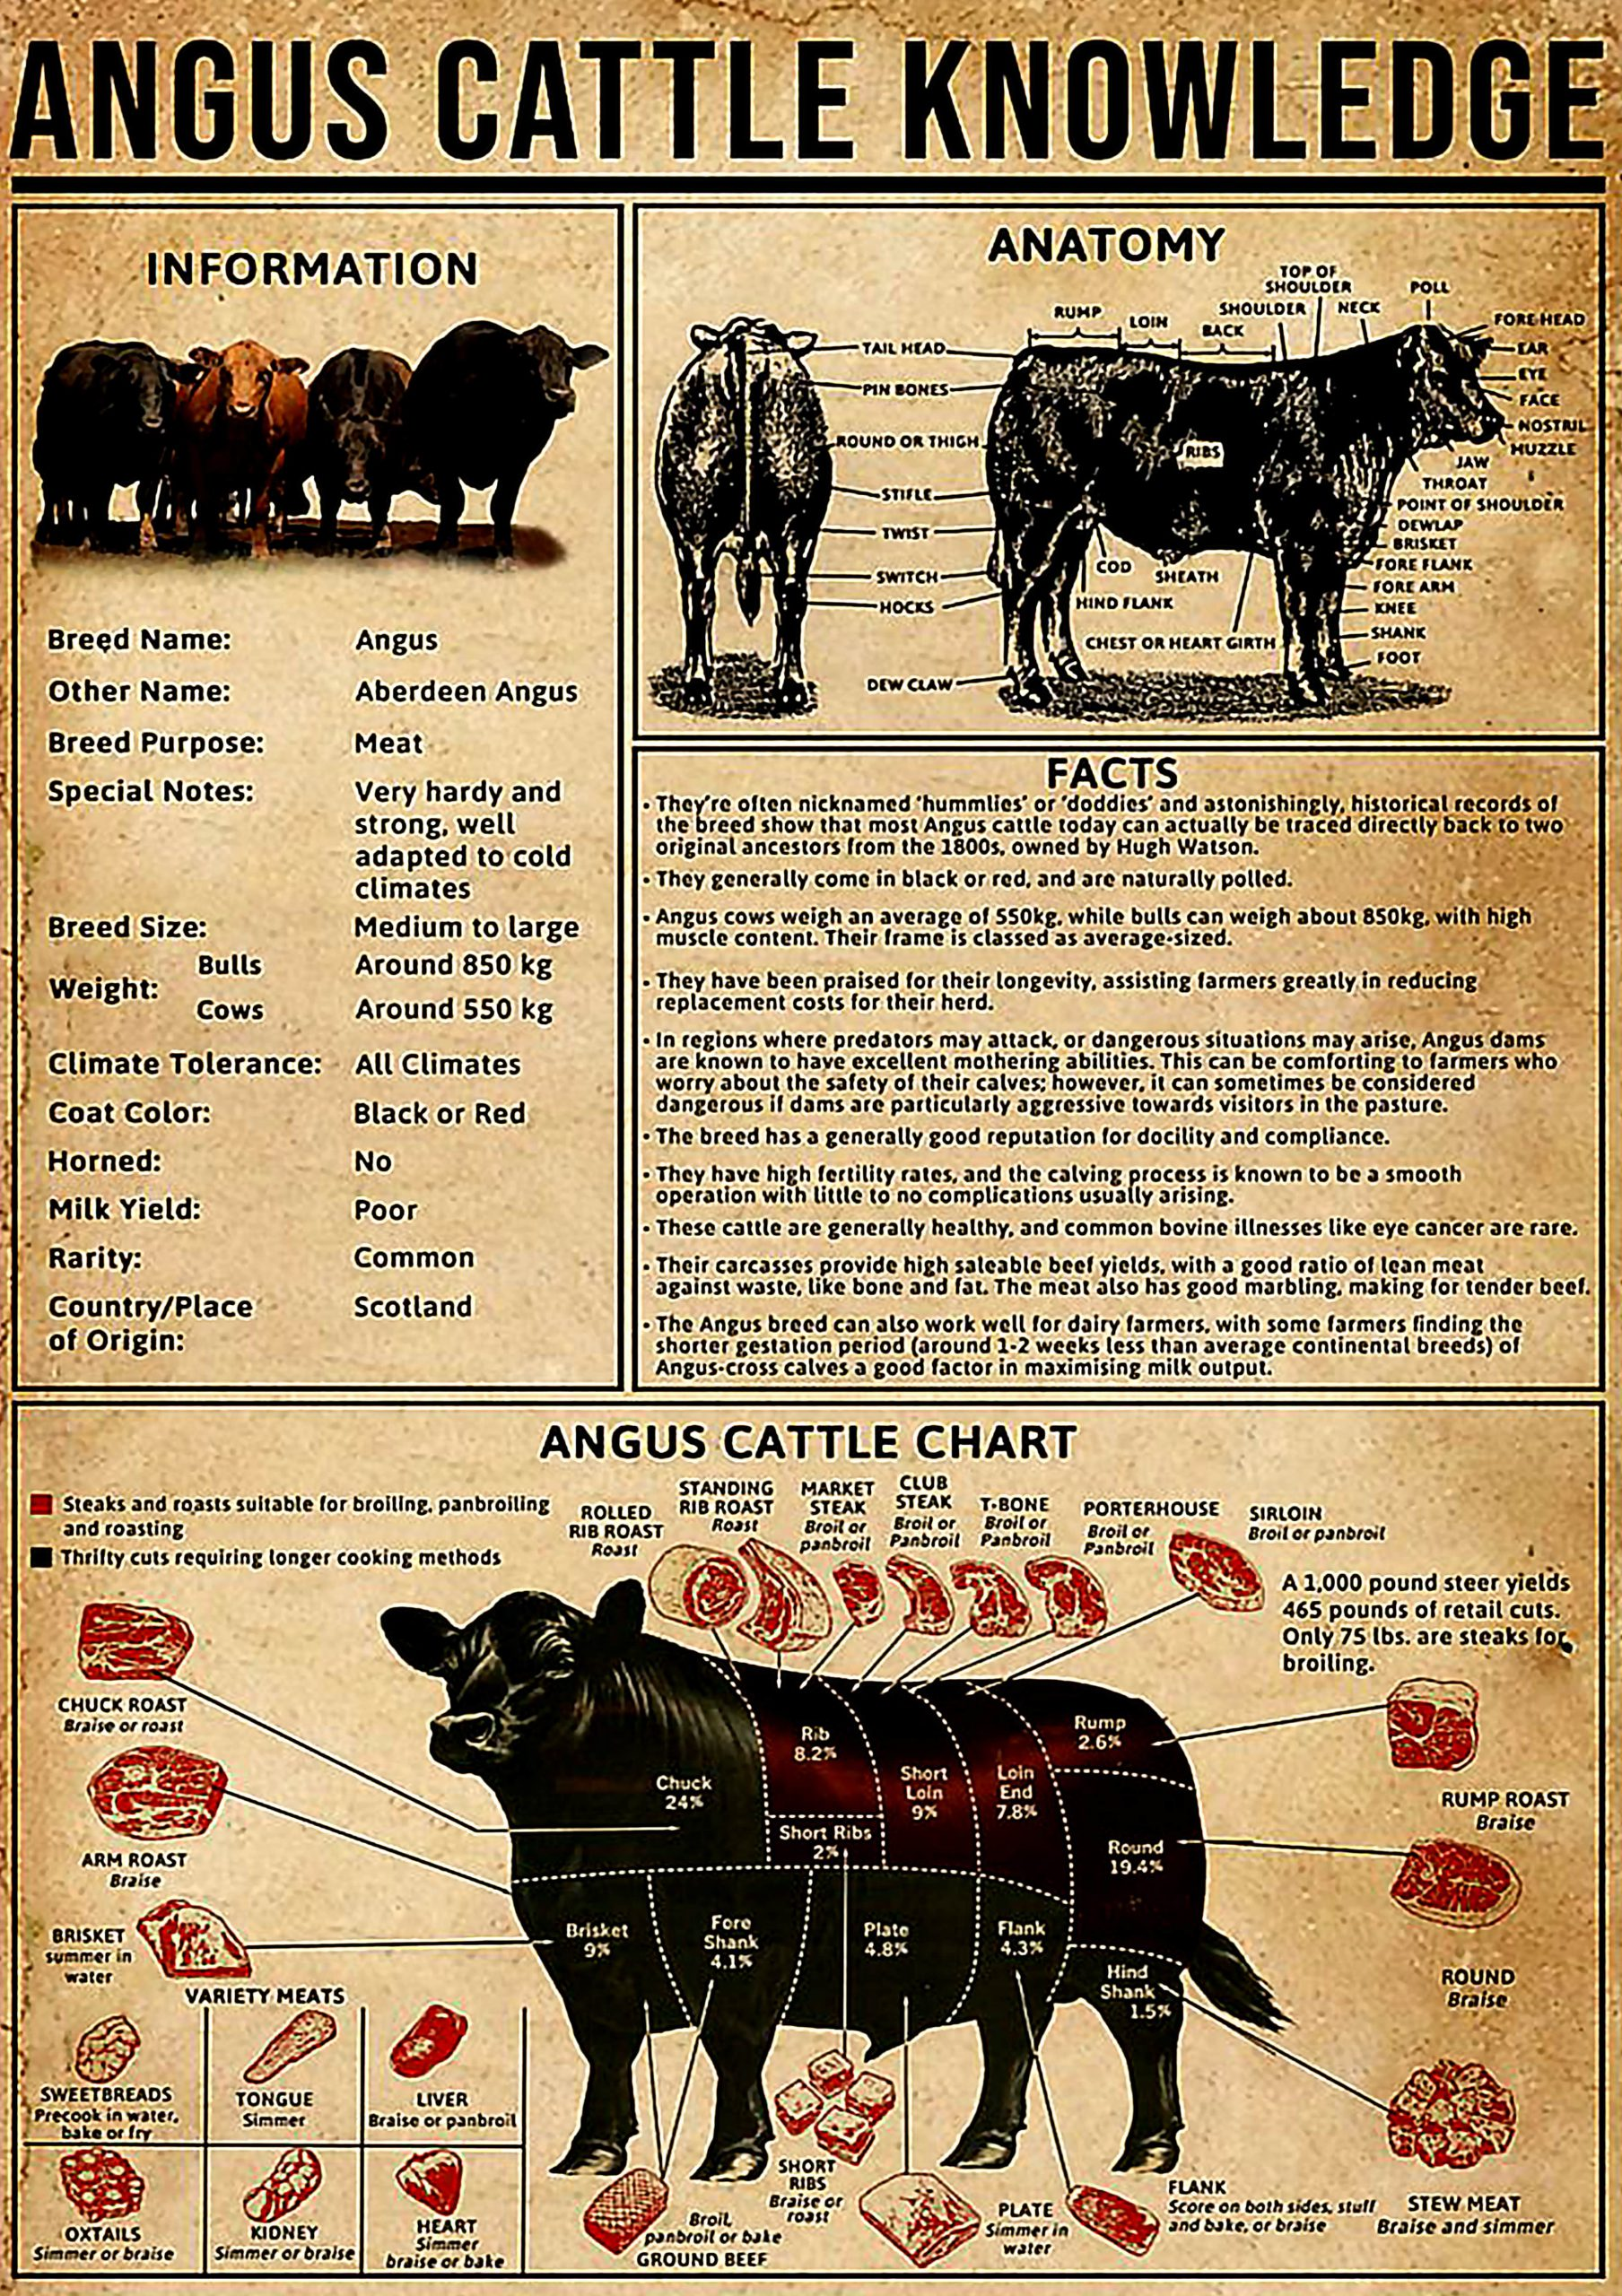 vintage angus cattle knowledge poster 1 - Copy (3)